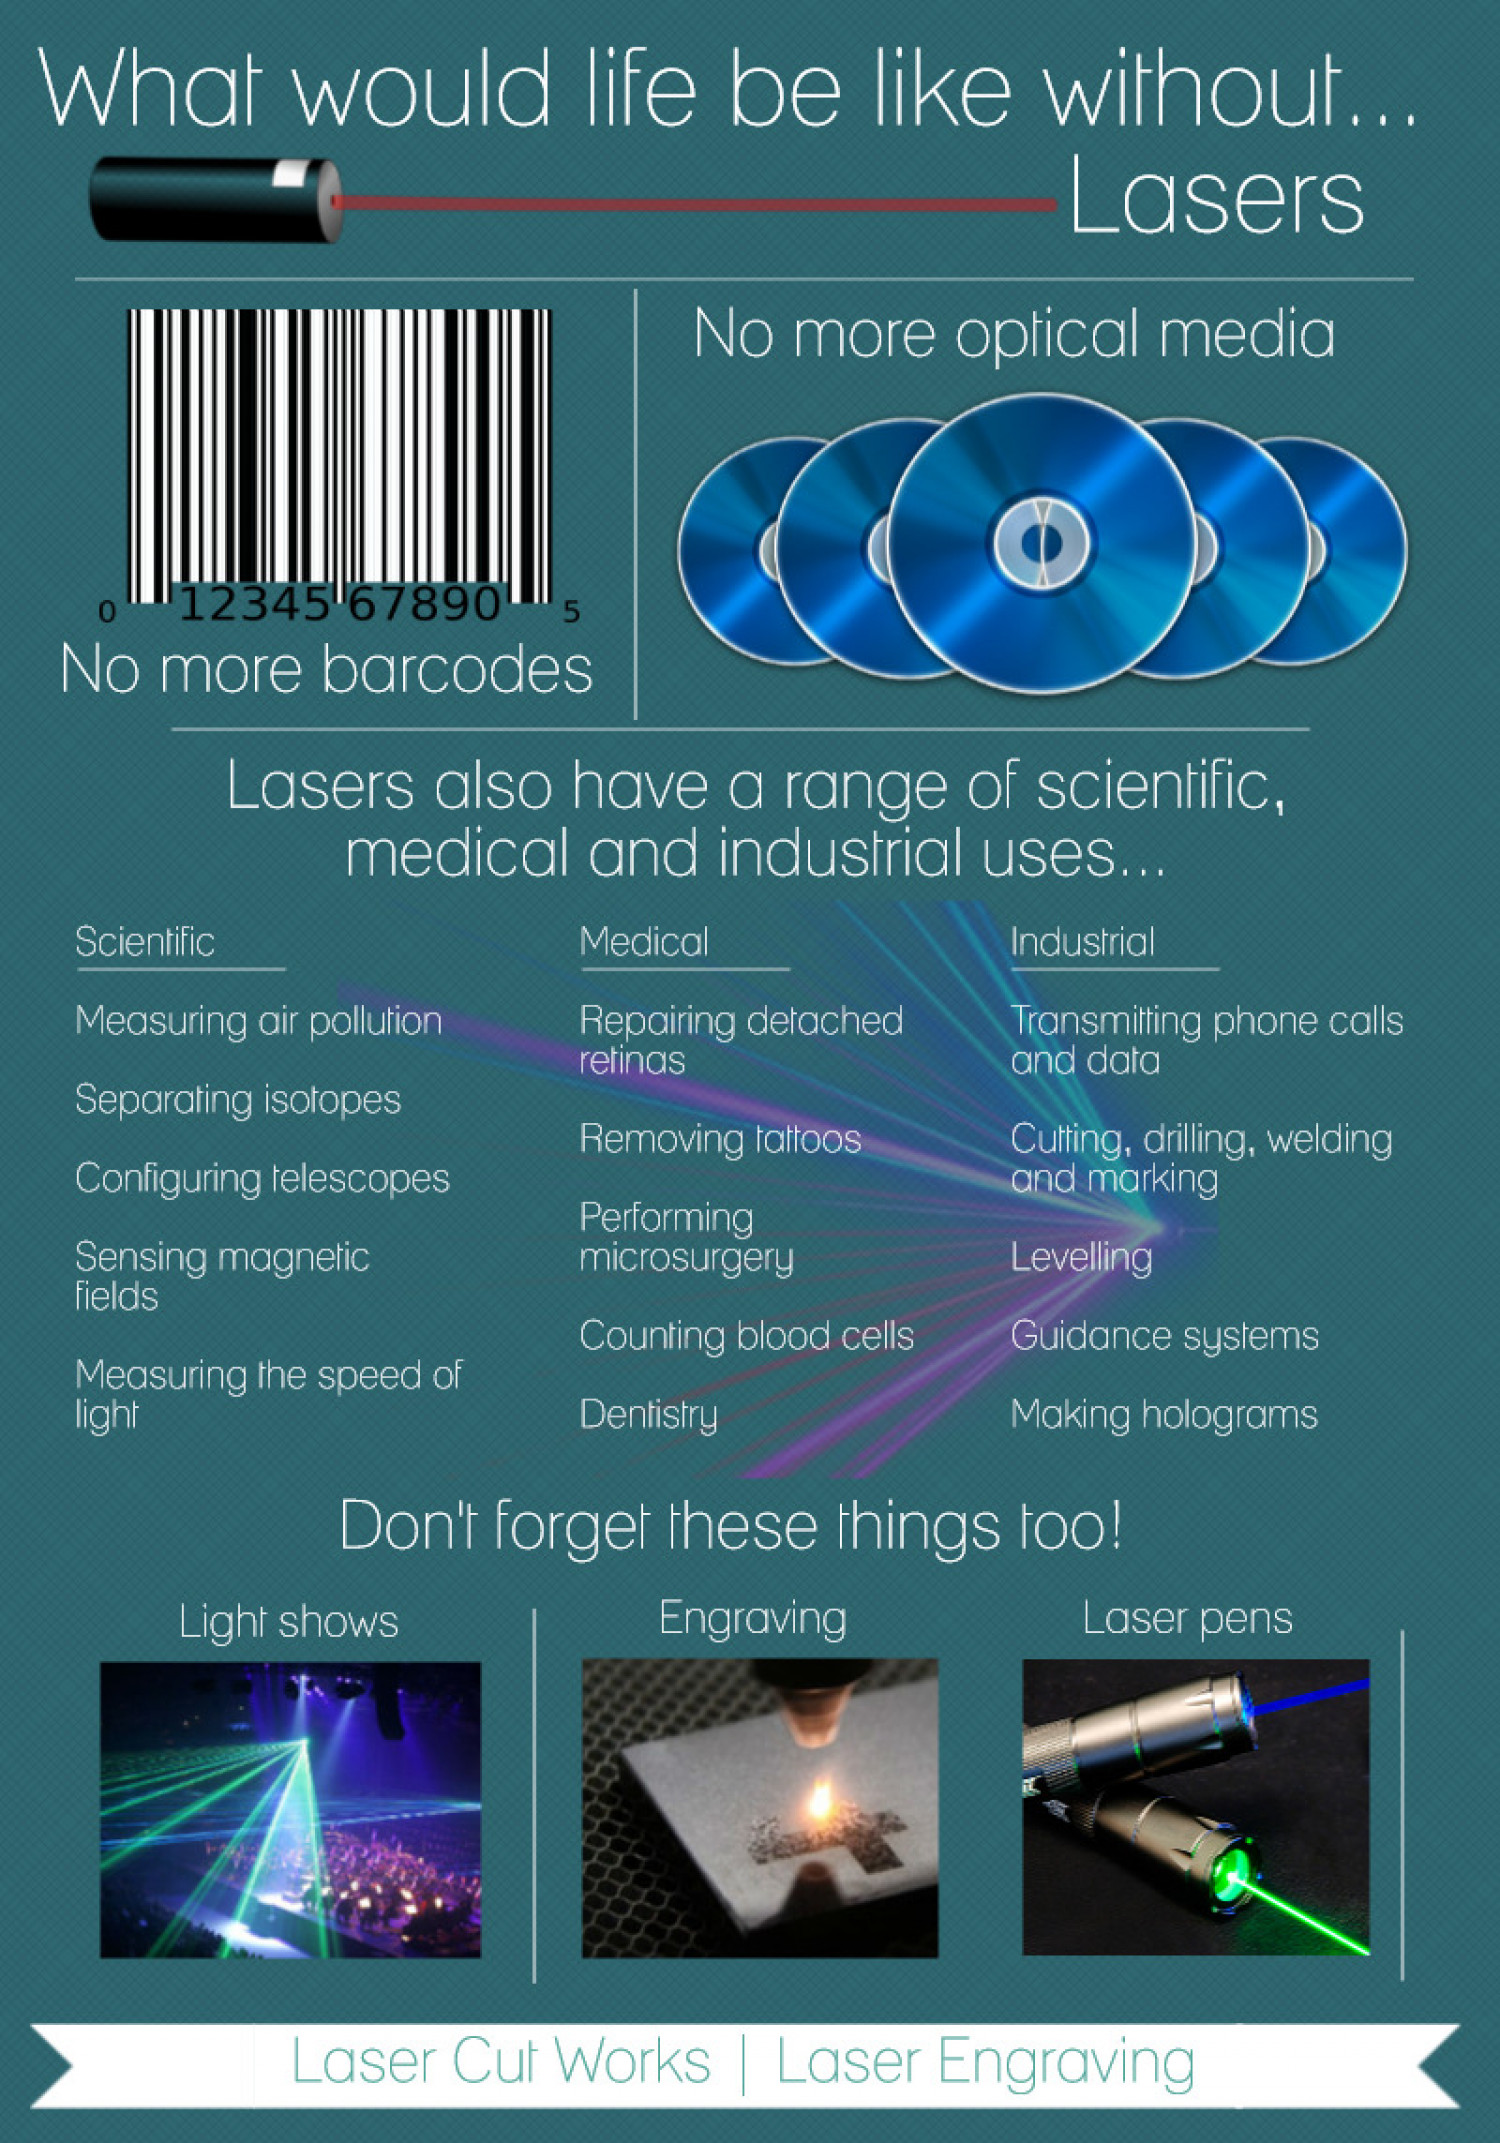 What Would Life Be Like Without Lasers Infographic